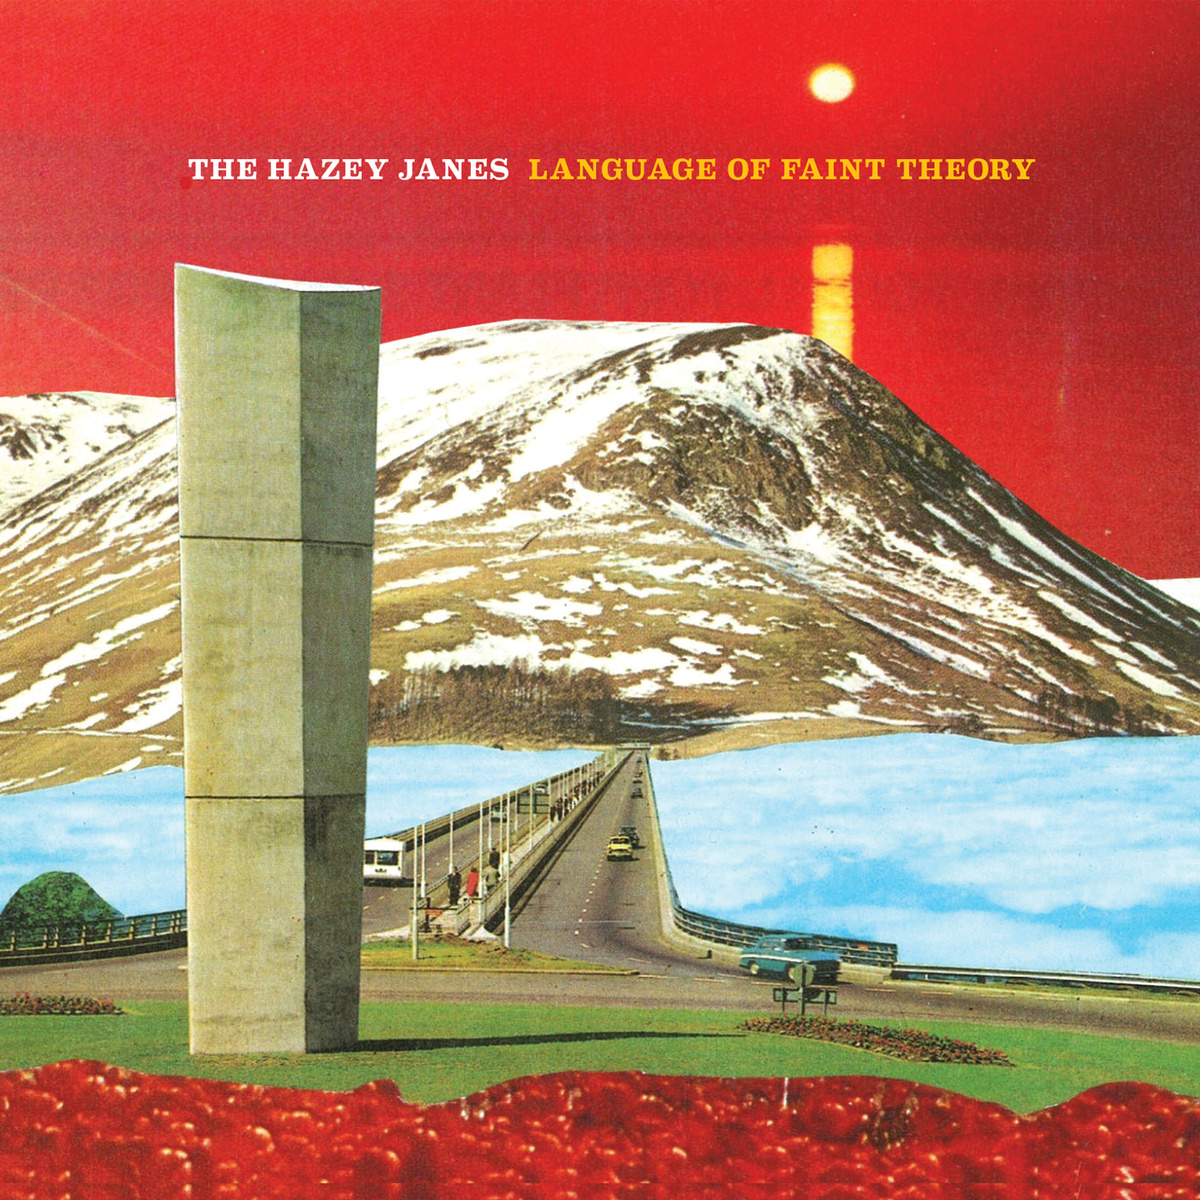 "Artwork to The Hazey Janes' forthcoming long-player. Lovely innit. Good work Jesse. collageartbyjesse: i'm excited to finally share the art for the hazey janes' new album ""language of faint theory"", made from vintage guidebooks of their home city of dundee, scotland. here's a preview track along with vinyl/cd/digital preorders: hazeyjanes.bandcamp.com/album/language-of-faint-theory society6 tumblr facebook twitter"